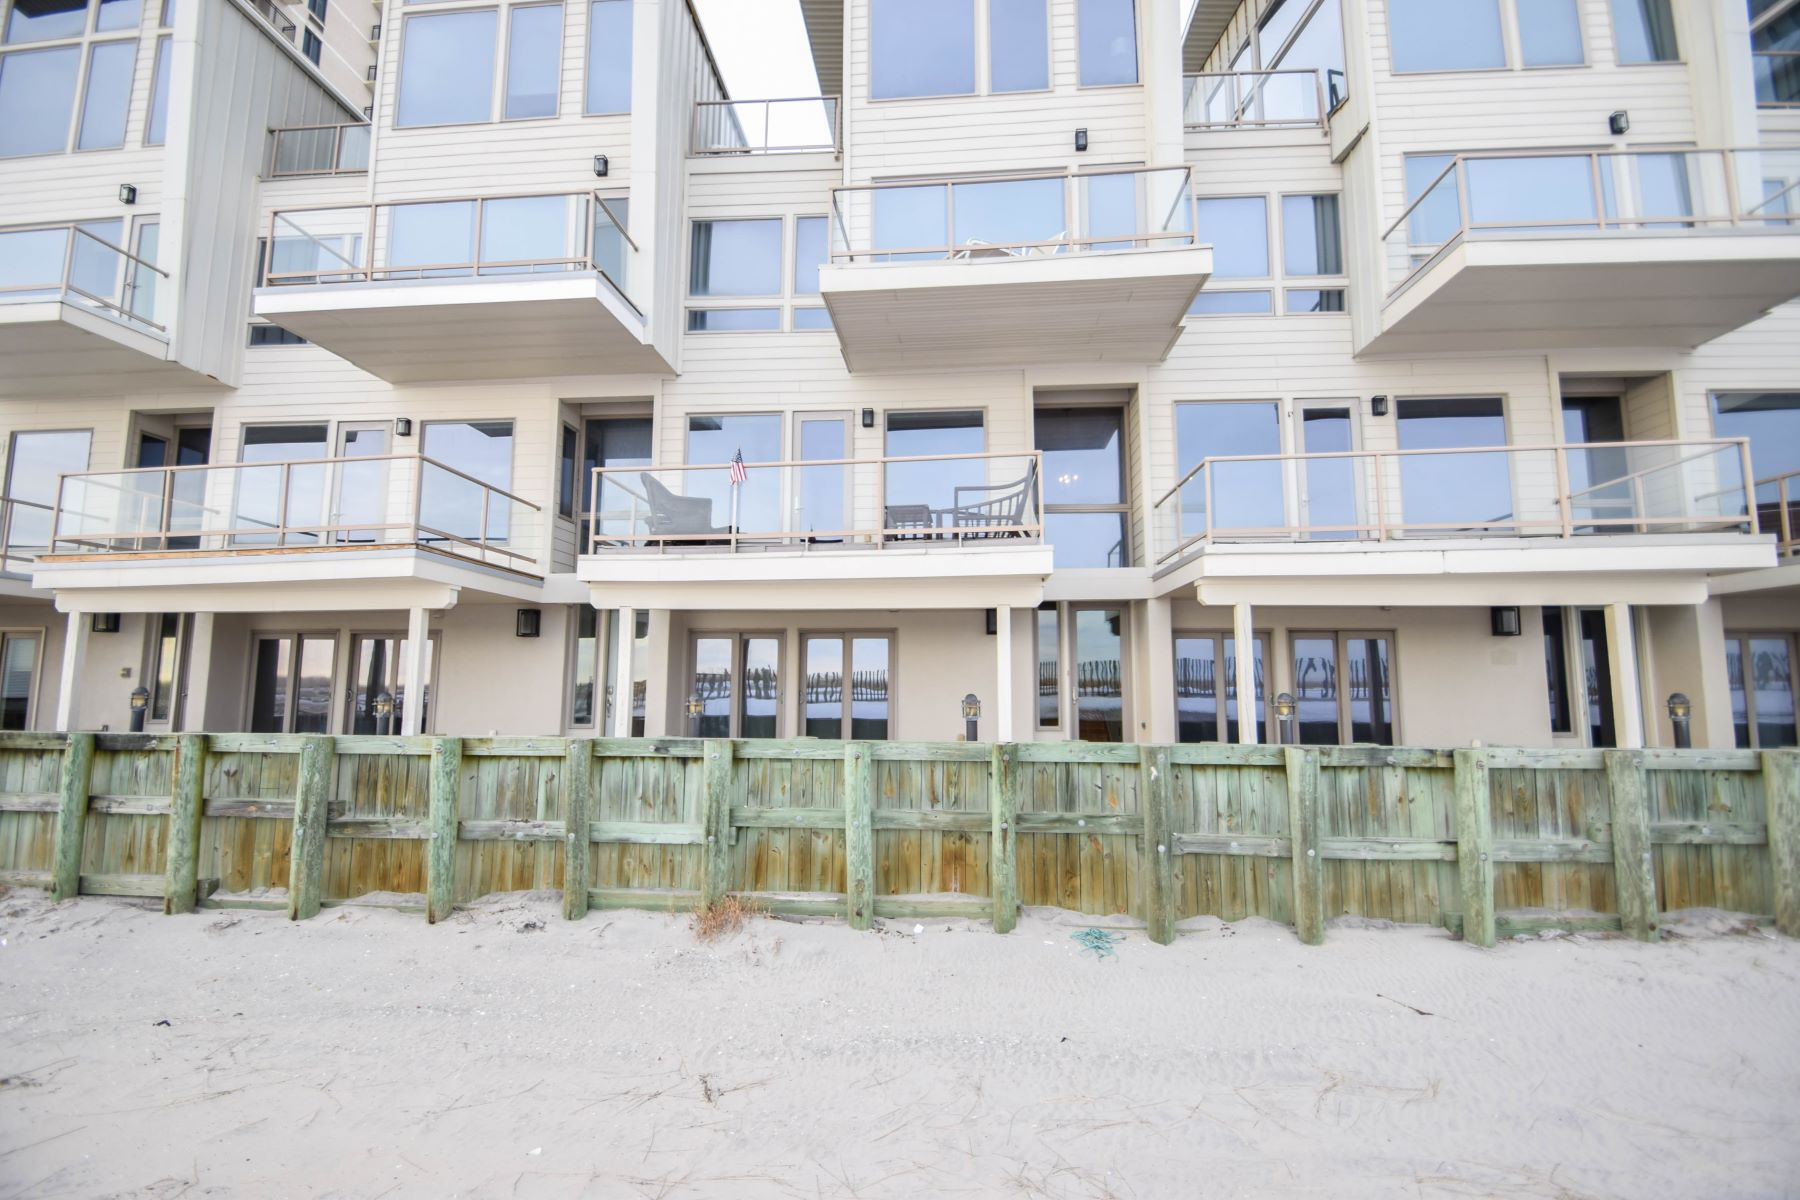 Single Family Home for Rent at 9513 Beach Ave 9513 Beach Ave Split Season 2nd Half, August 2019, Margate, New Jersey 08402 United States